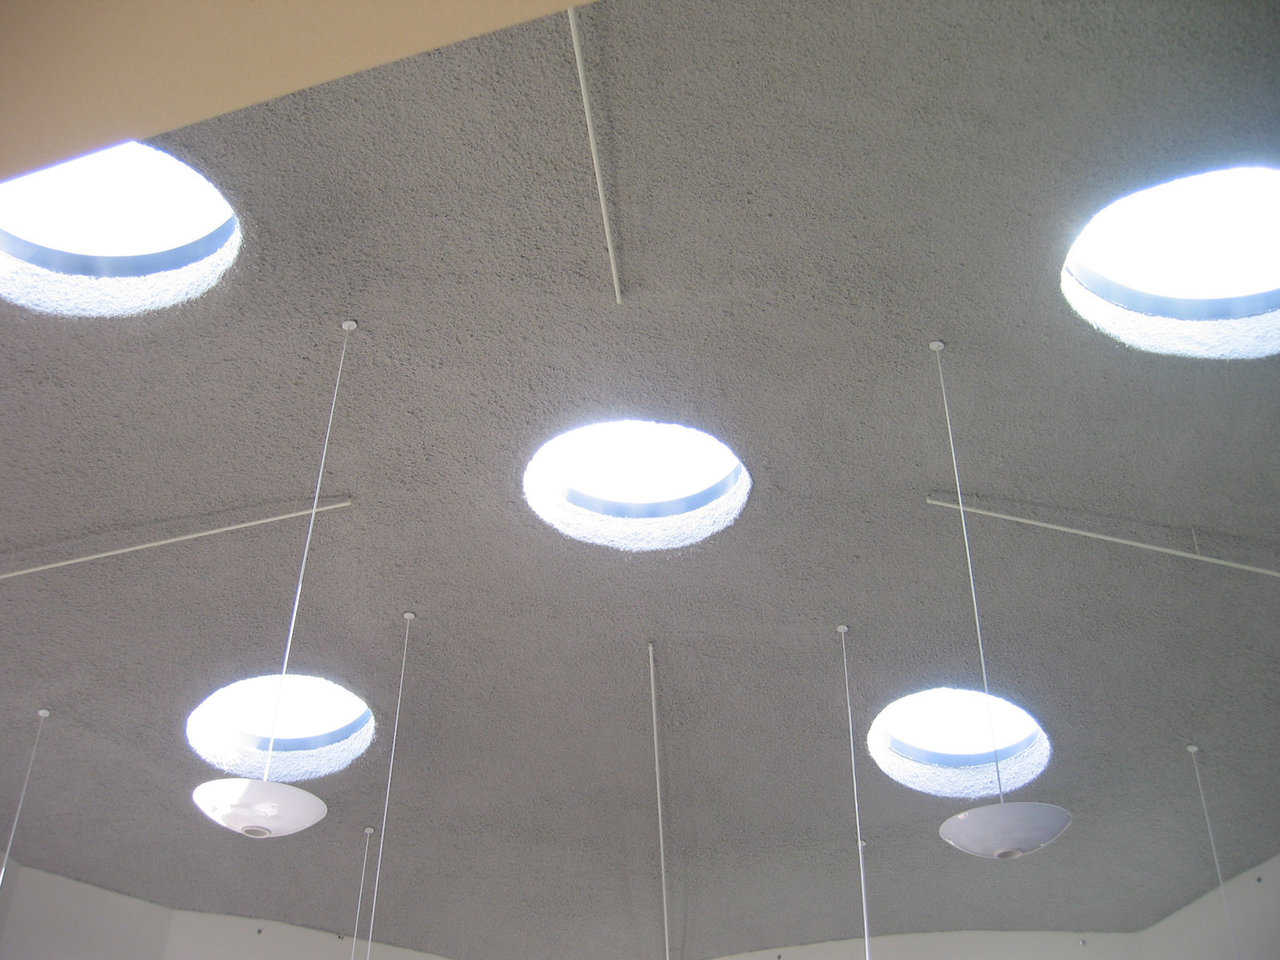 Let there be light! — The dome shell has inset skylights and hanging light fixtures.